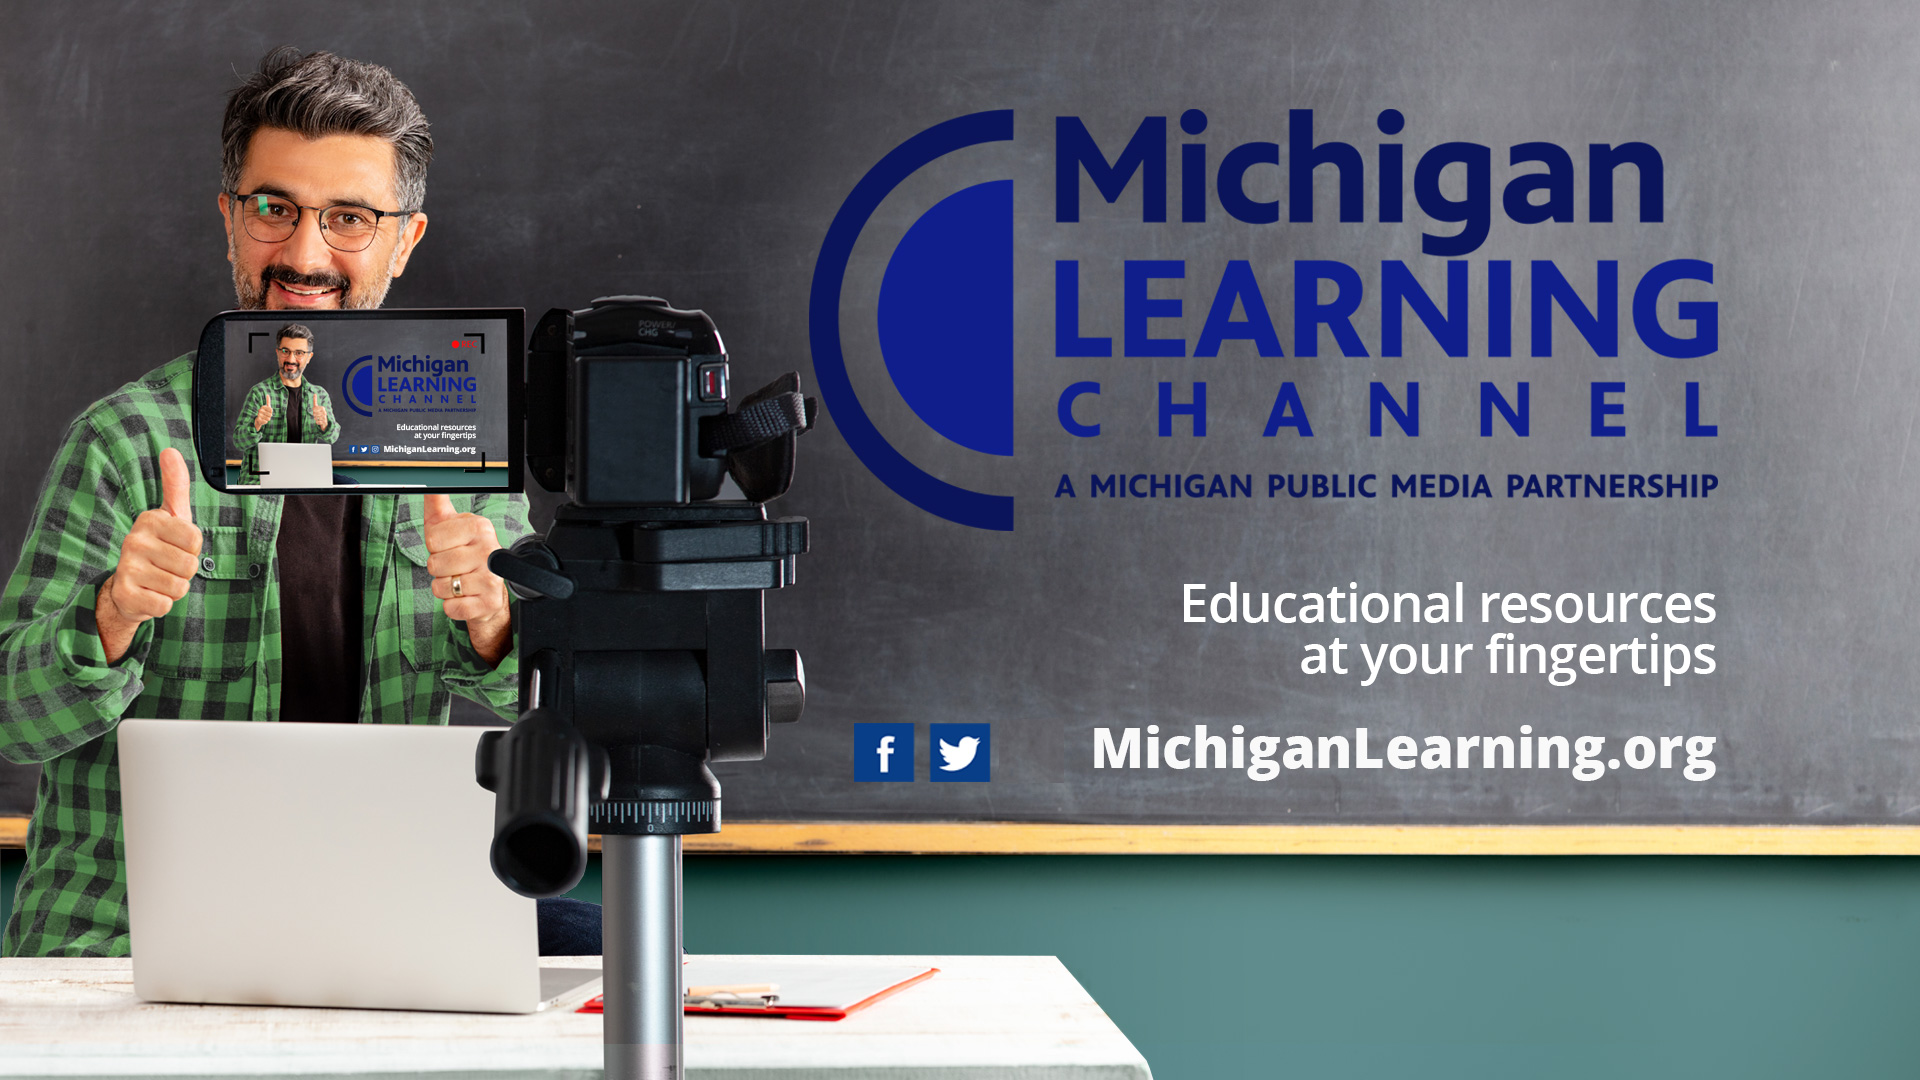 Michigan Learning Channel - A Michigan public media partnership